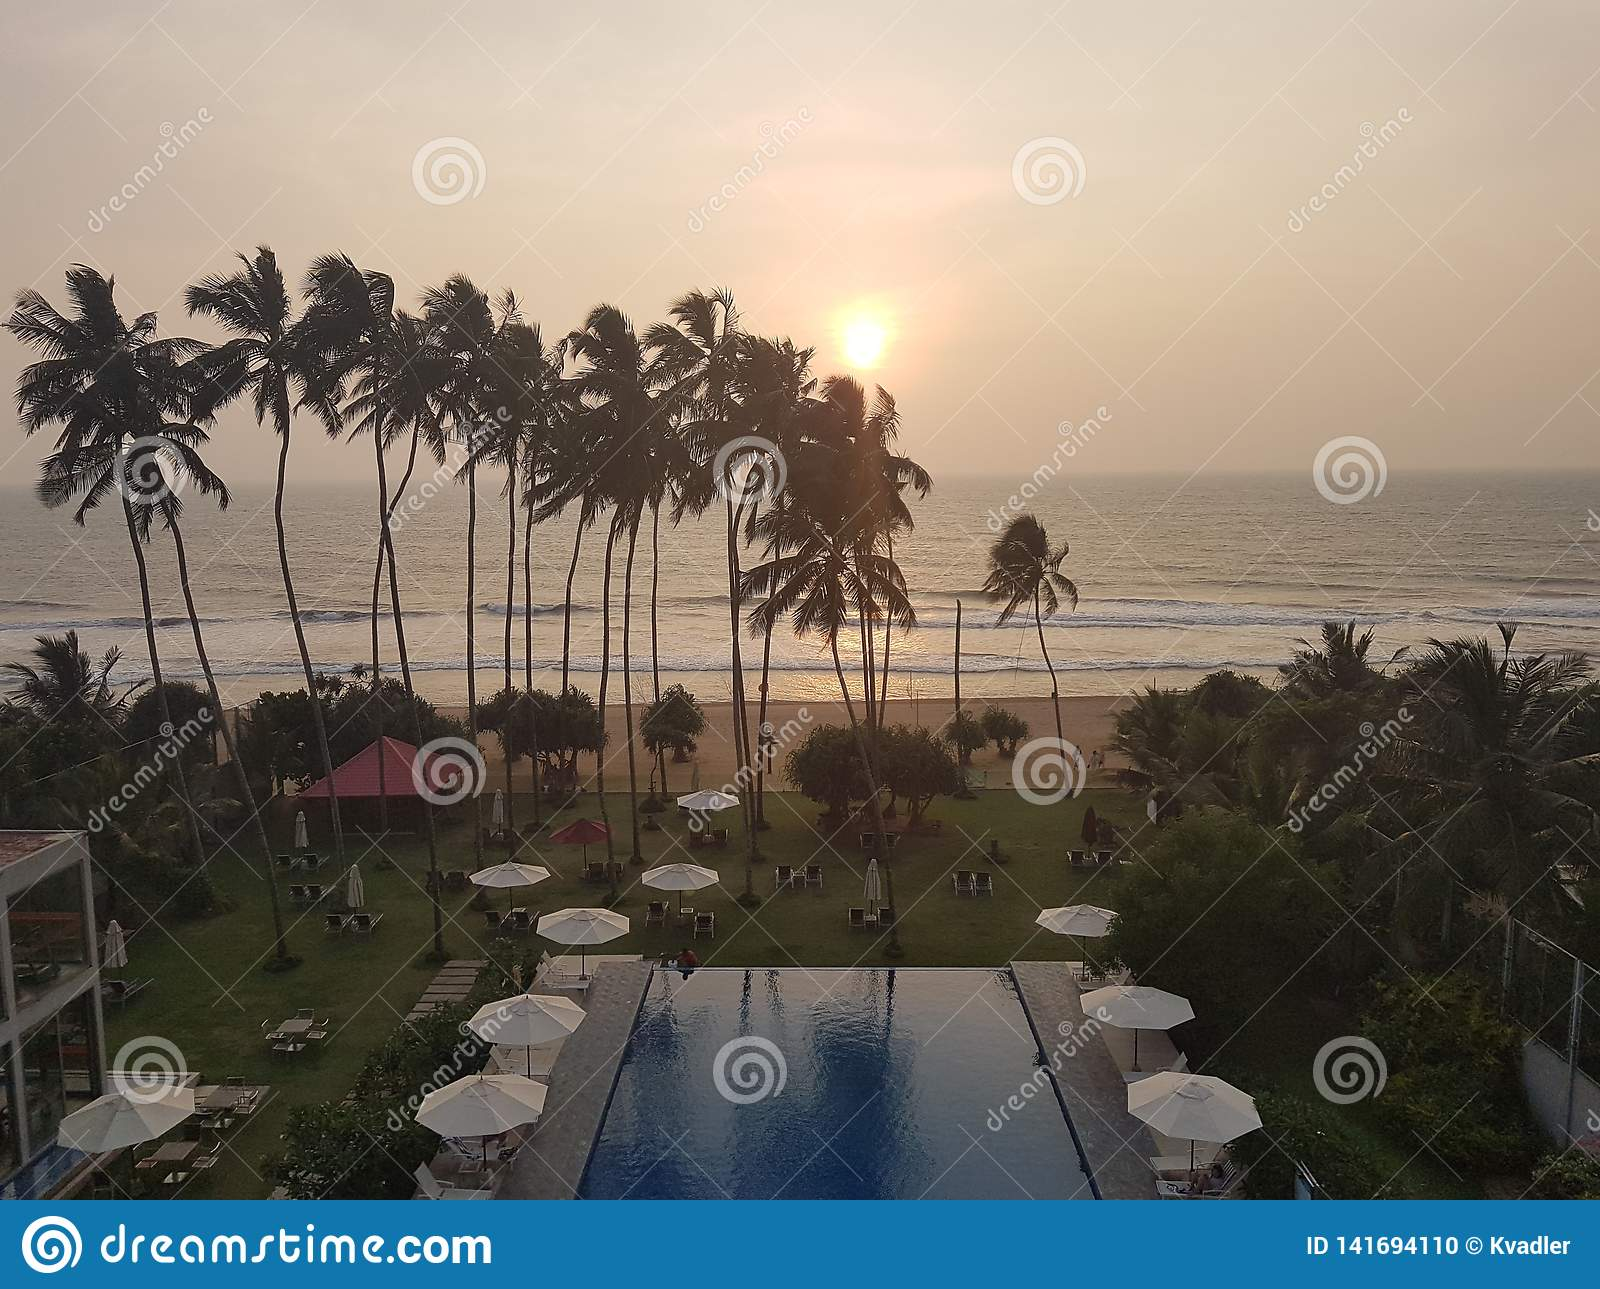 Exotic hotel with swimming pool and palms on the beach of ocean, Sri Lanka, beach